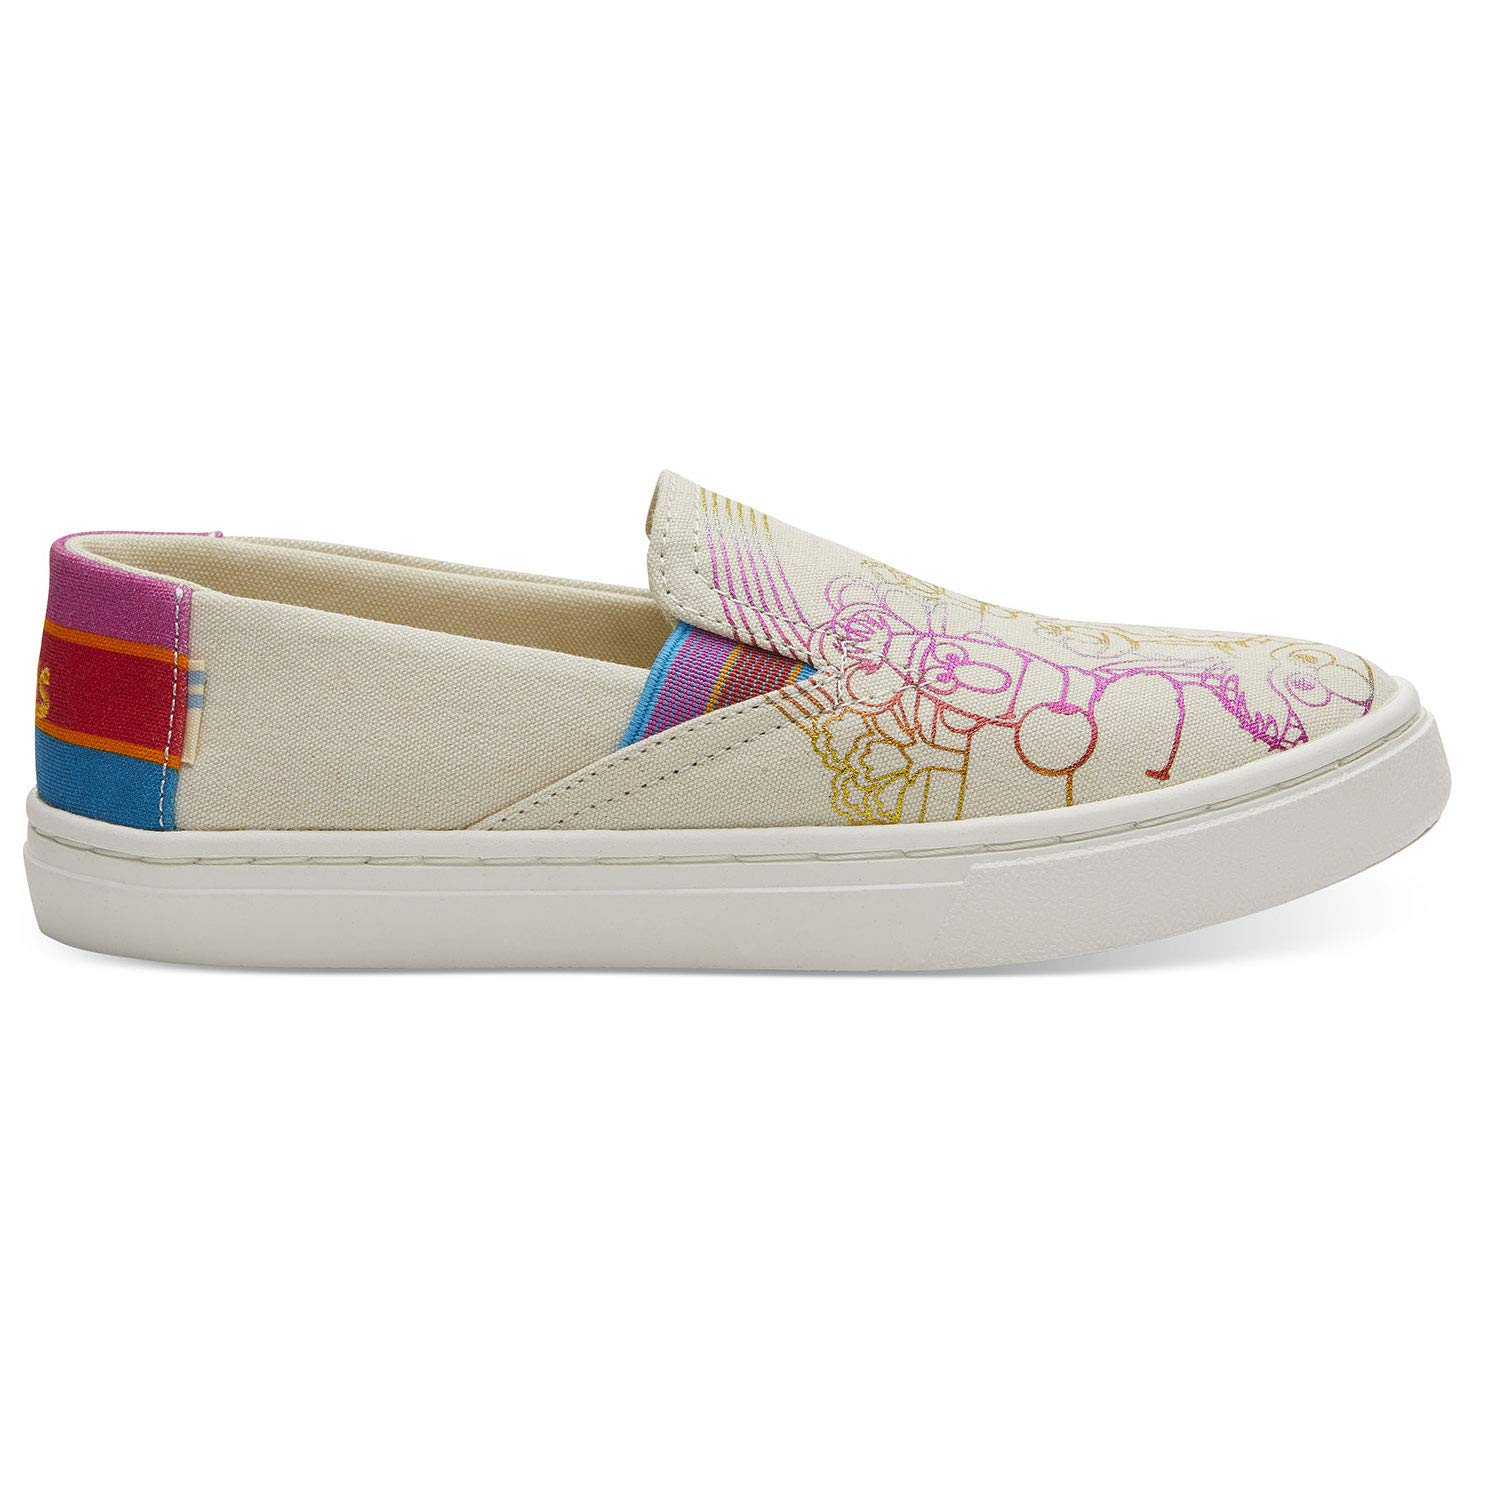 TOMS Sesame Street X Foil Printed Canvas Youth Luca Slip-Ons 10013644 (Size: 6) by TOMS (Image #1)